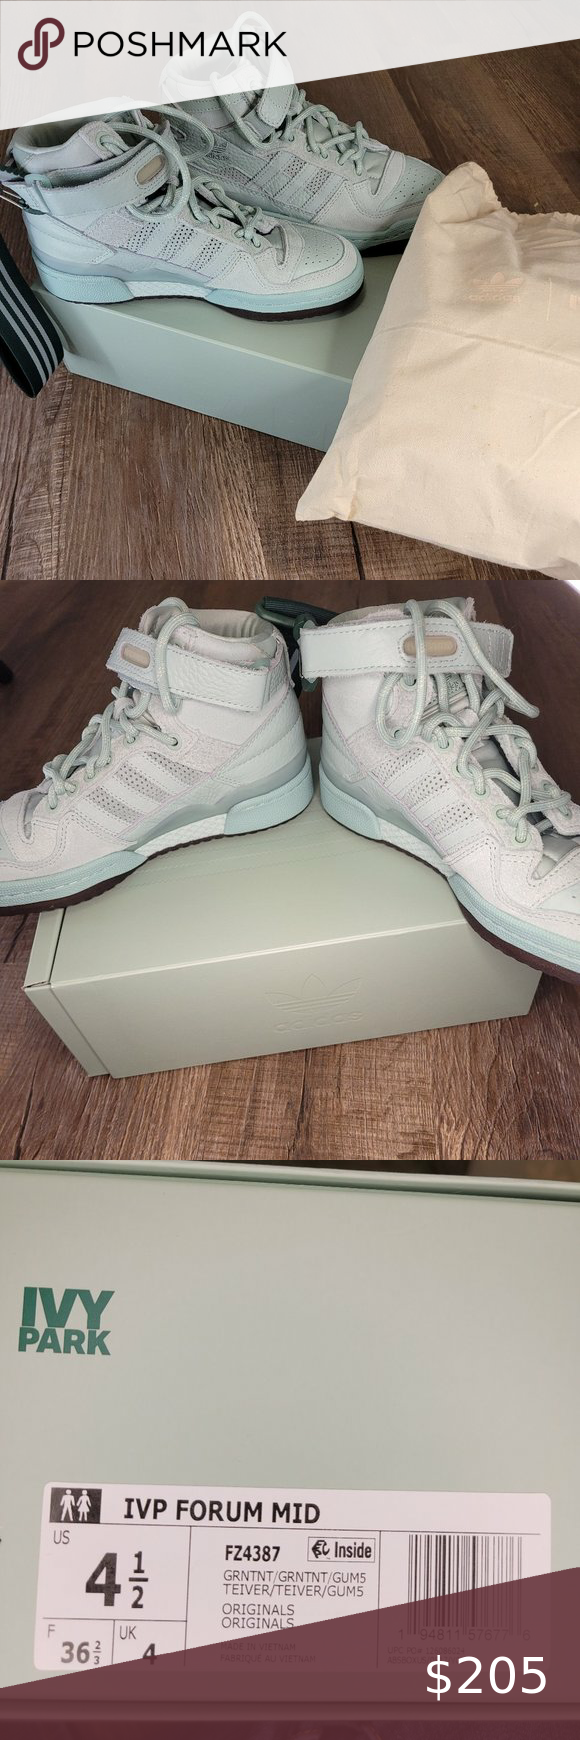 Ivy Park X Adidas Mid Forum In Greentint Beyonce S Ivy Park X Adidas Mid Forum In Men S 4 5 Which Are Women S Womens Shoes Sneakers Mens Joggers White Sneaker